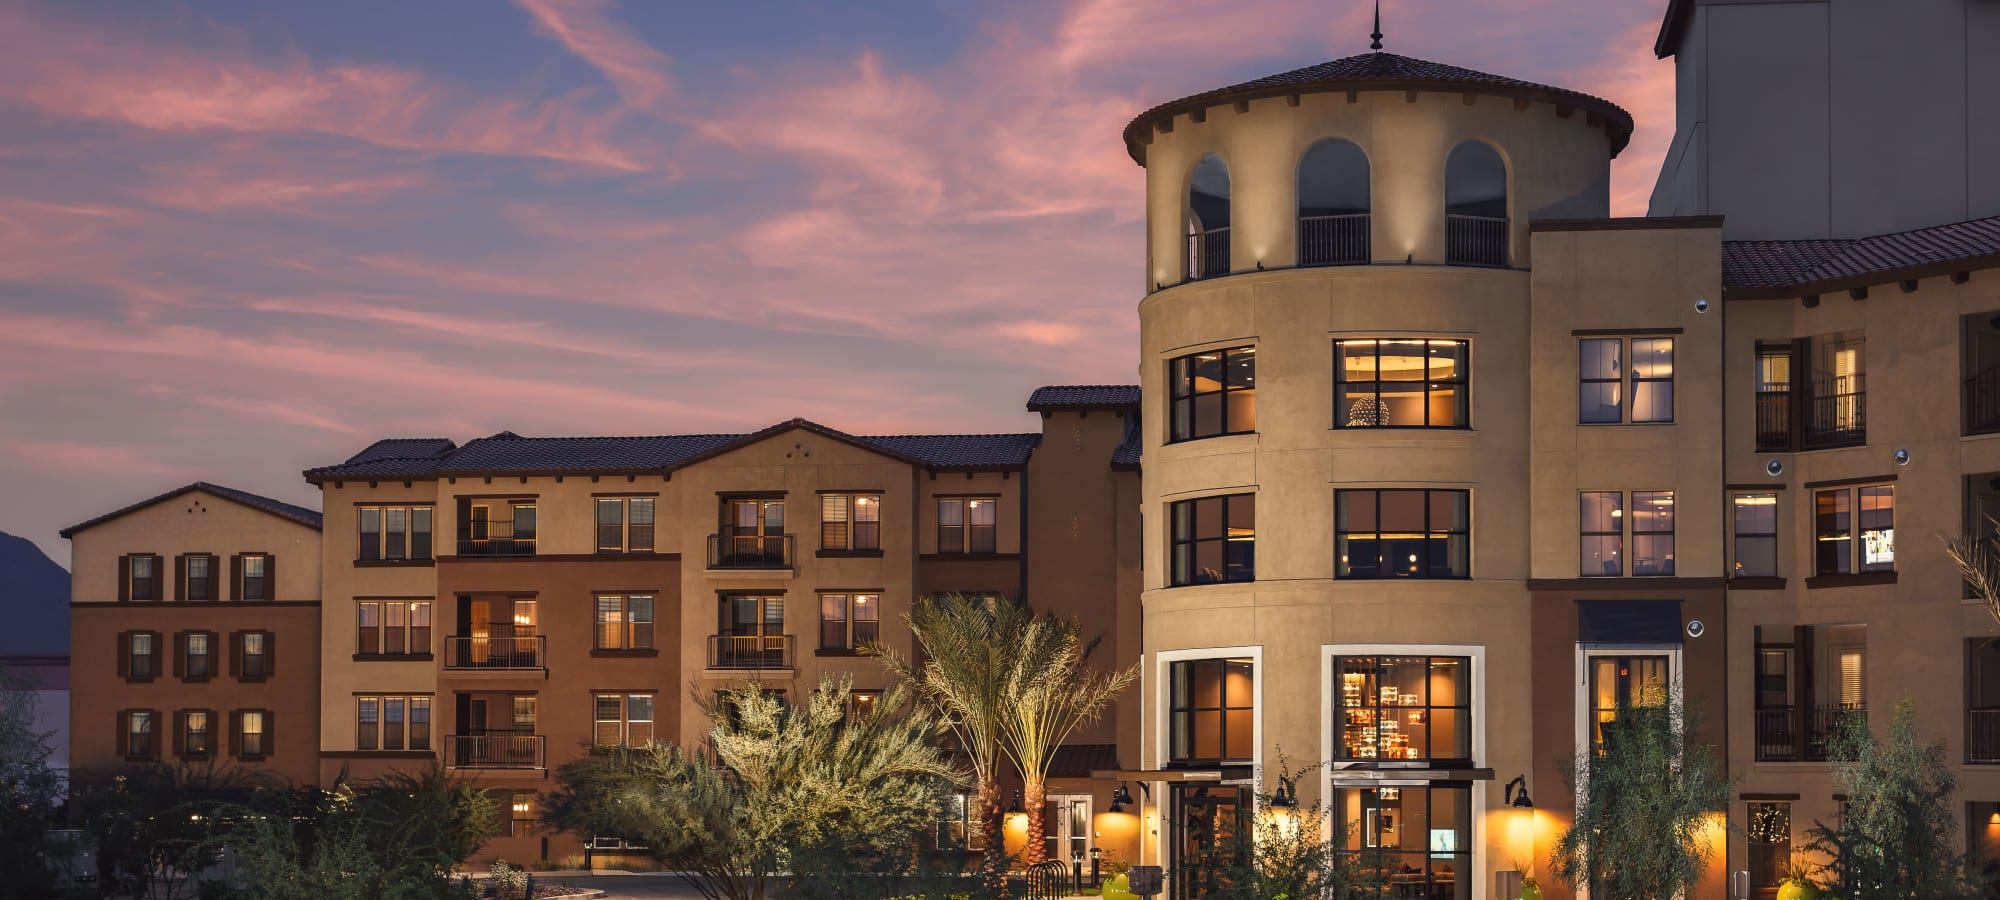 Exterior view of our luxury community at sunset at The Core Scottsdale in Scottsdale, Arizona